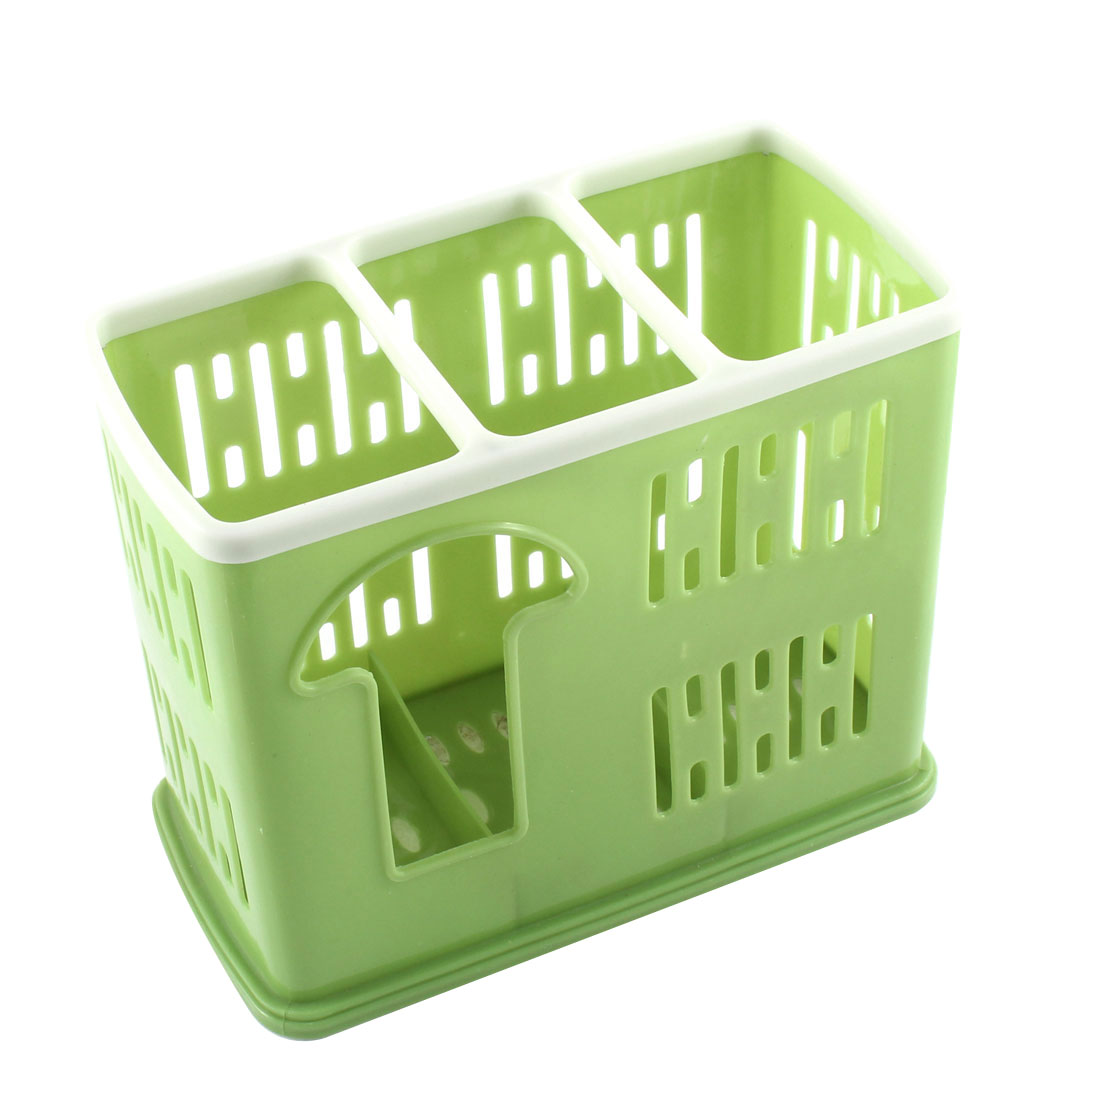 Tableware Chopsticks Spoon Multifunctional Hollow Out Case Holder Green